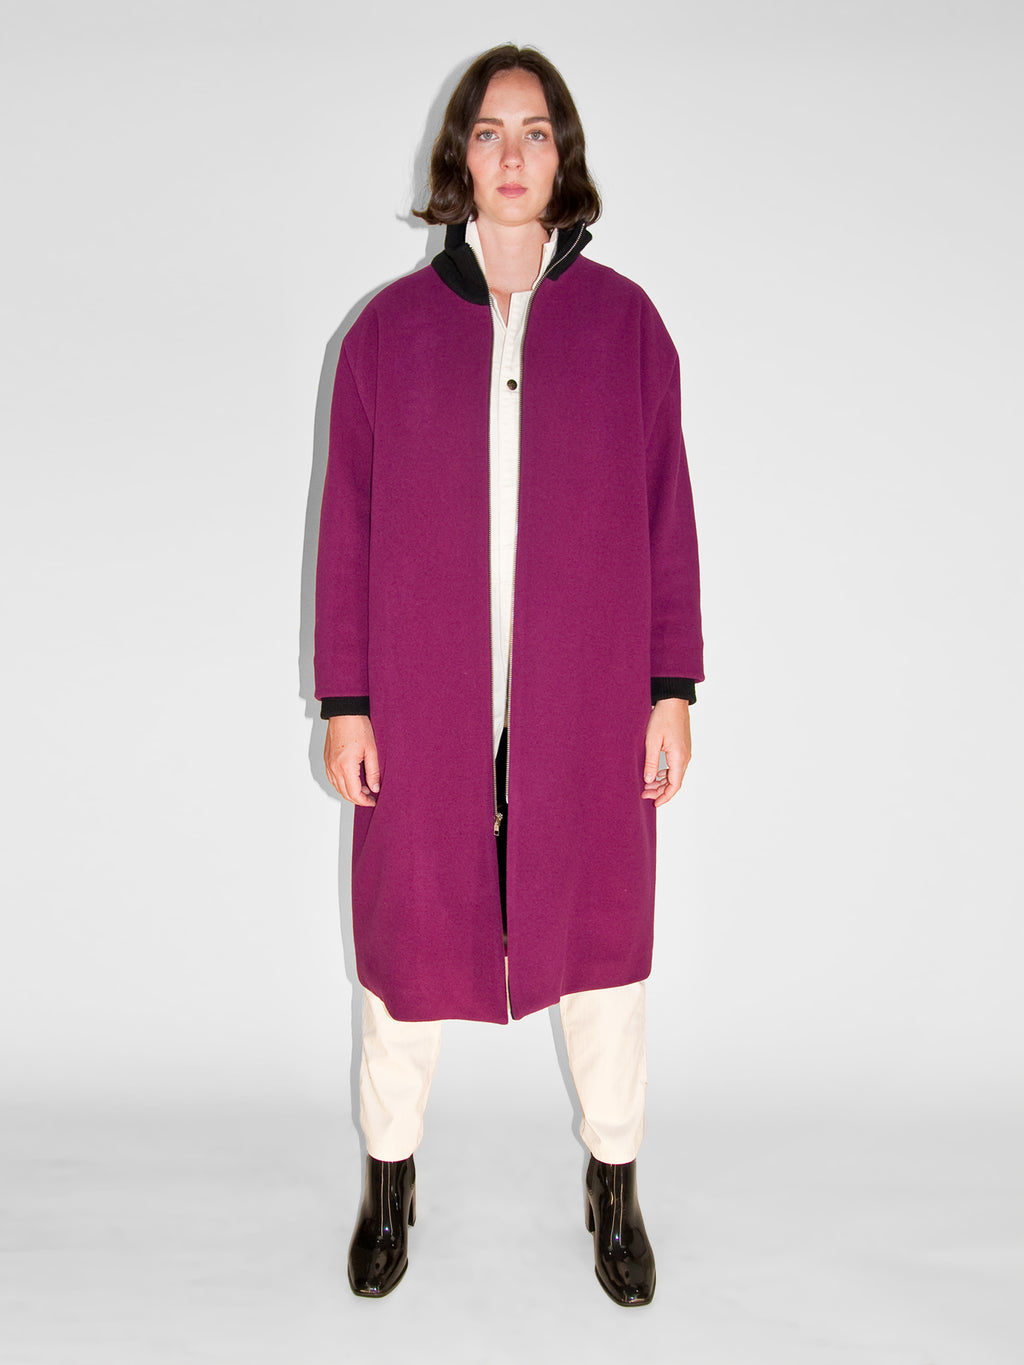 Blob Coat / Magenta Melton Wool